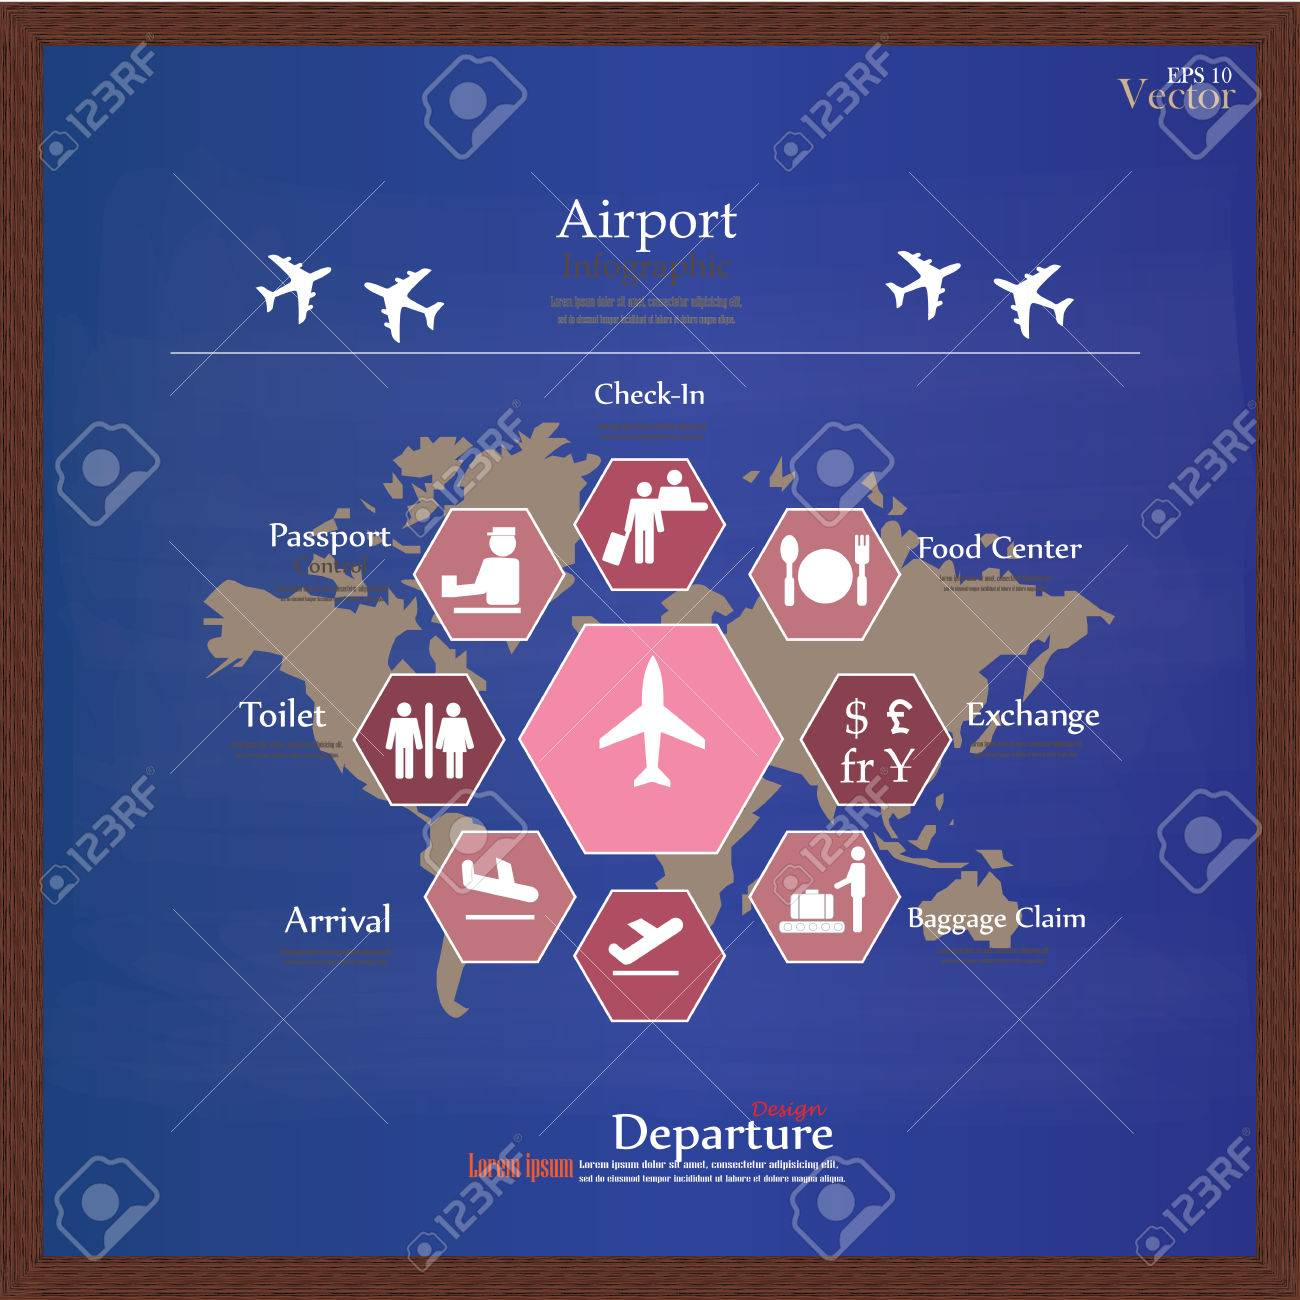 Airport business infographic presentation template concept design airport business infographic presentation template concept design on world map and airport service iconsrport gumiabroncs Choice Image